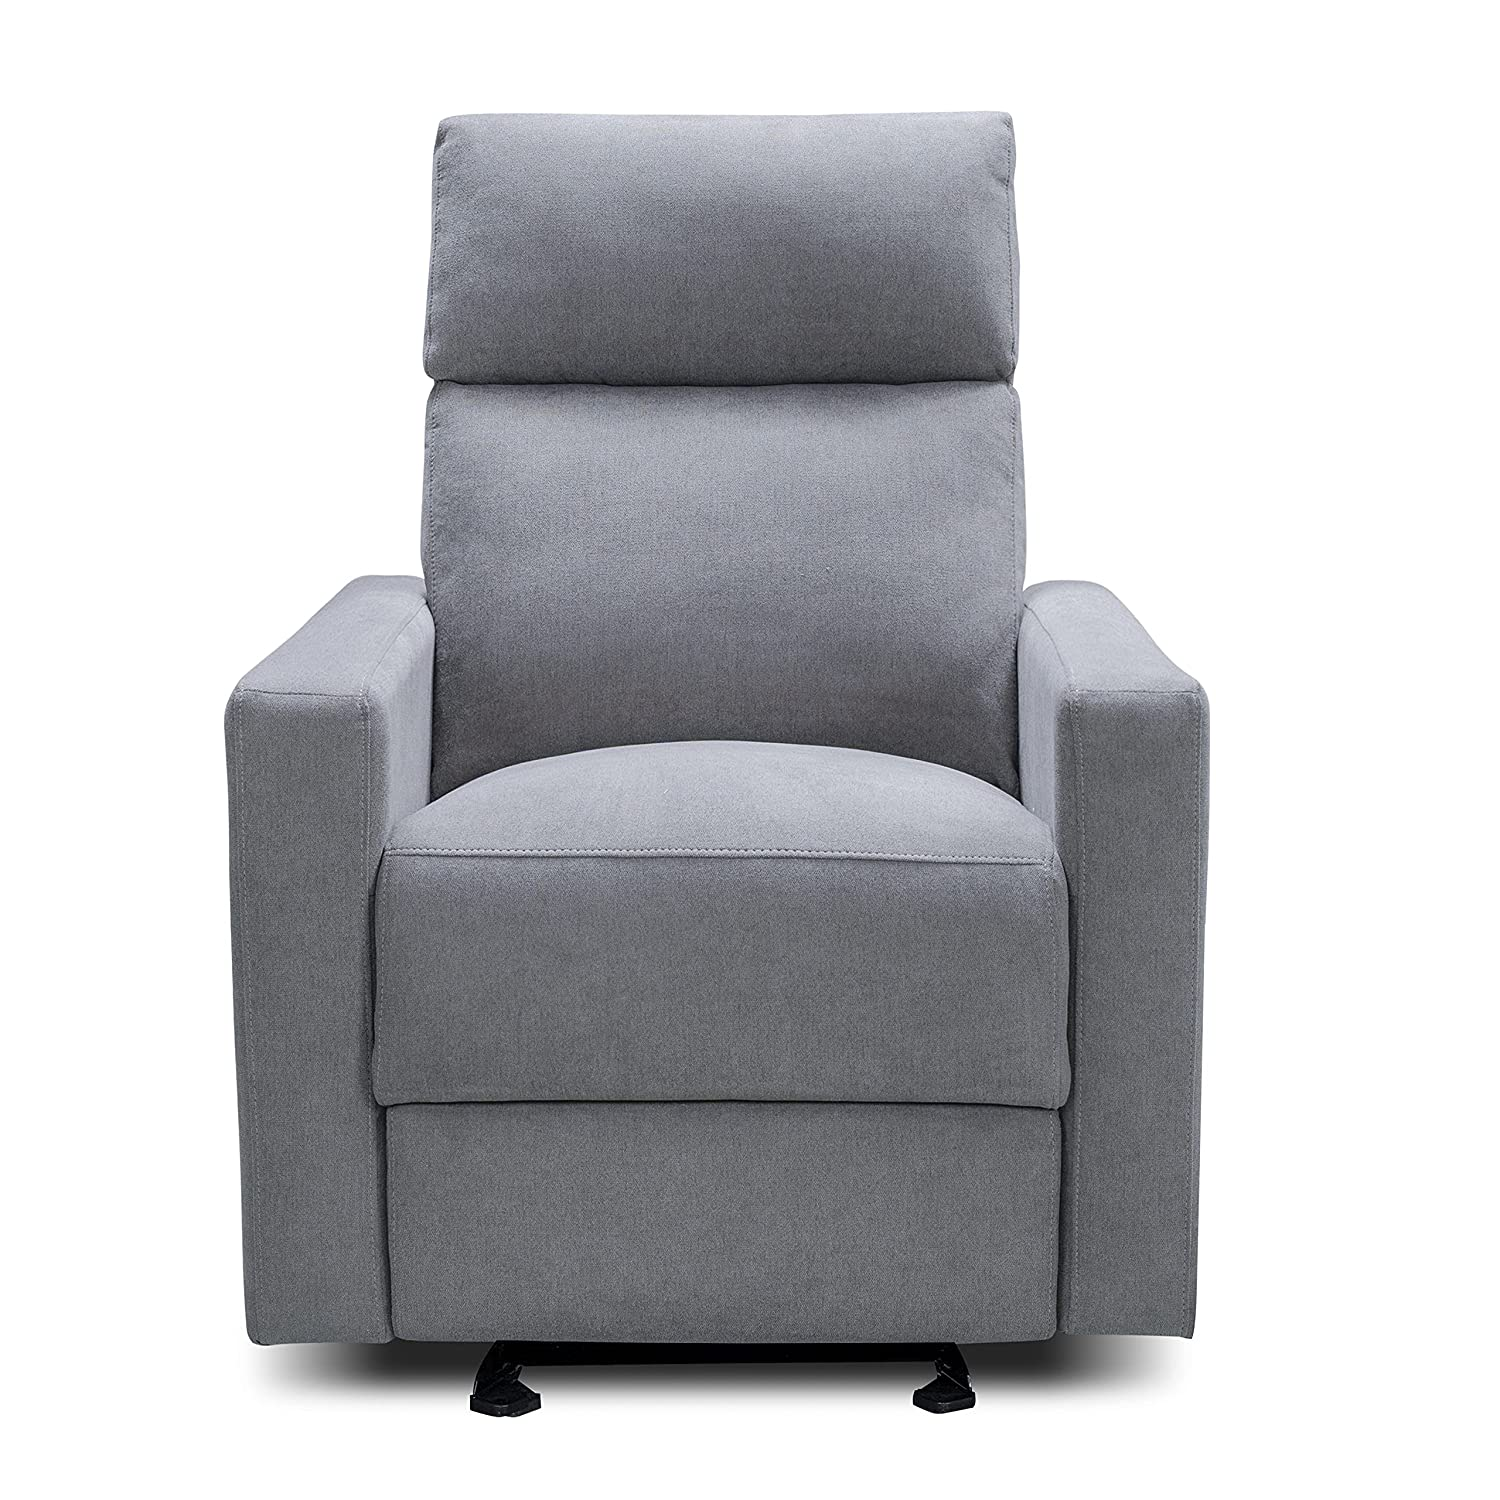 The Glider by Nurture& | Premium Power Recliner Nursery Glider Chair with Adjustable Head Support | Designed with a Thoughtful Combination of Function and Comfort | Built-in USB Charger (Gray)